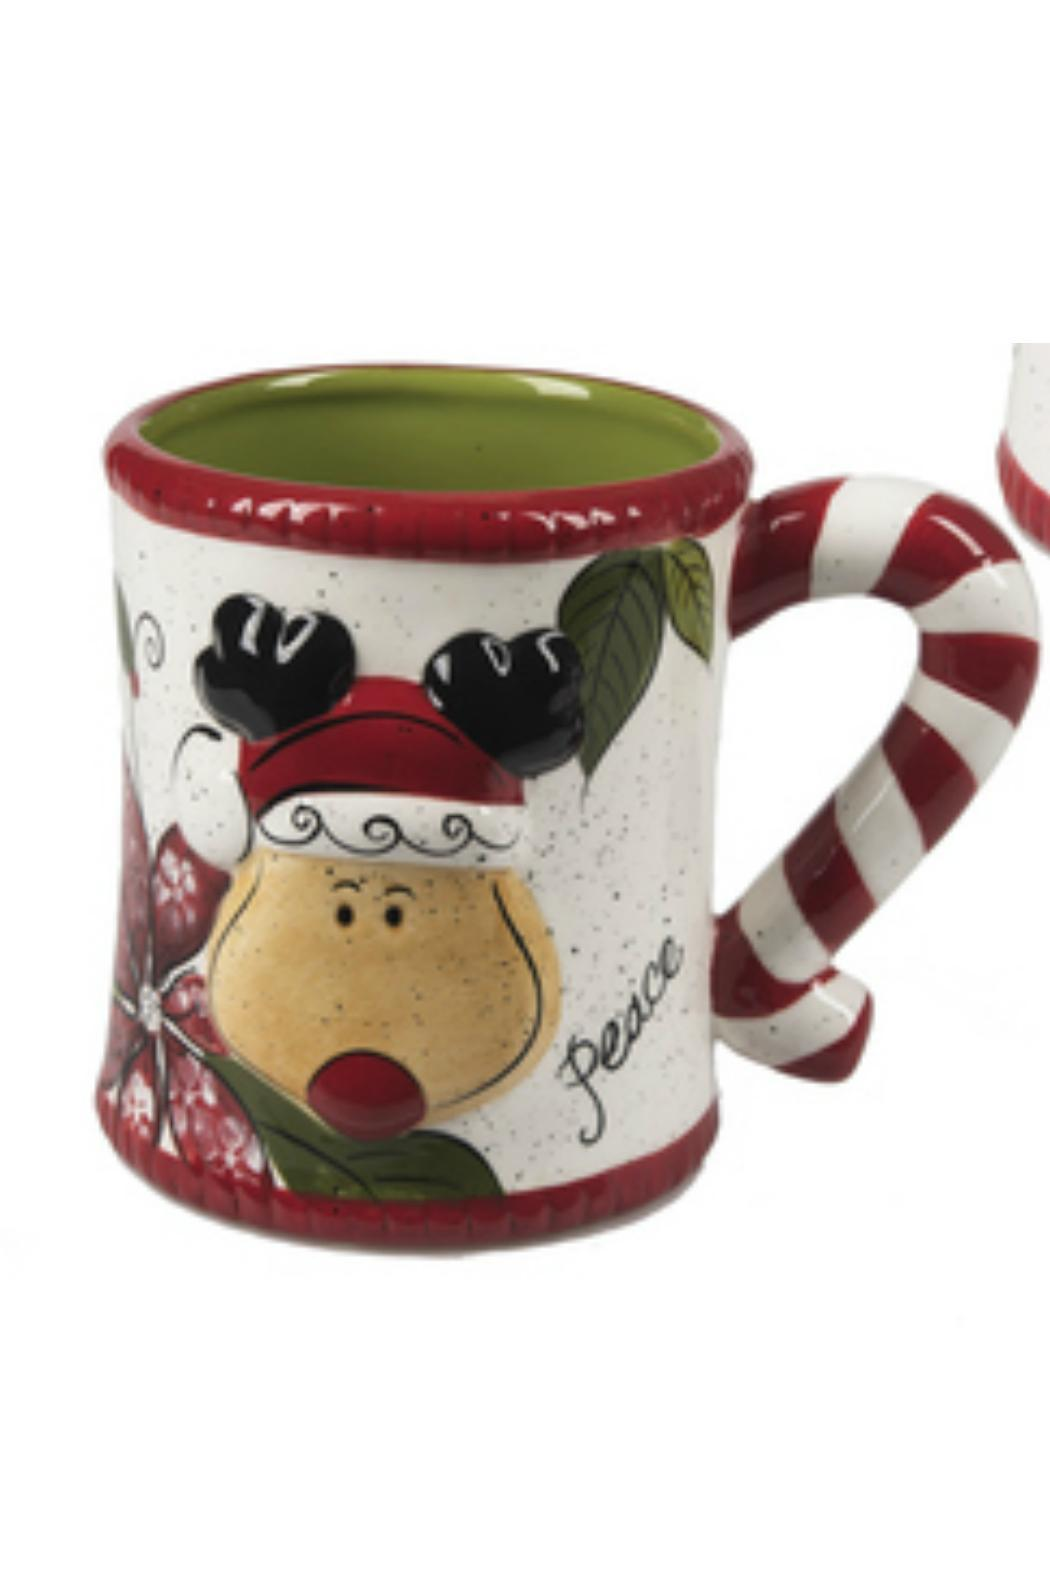 Ganz Christmas Pal Mugs From Ohio By Owl Eyes On You